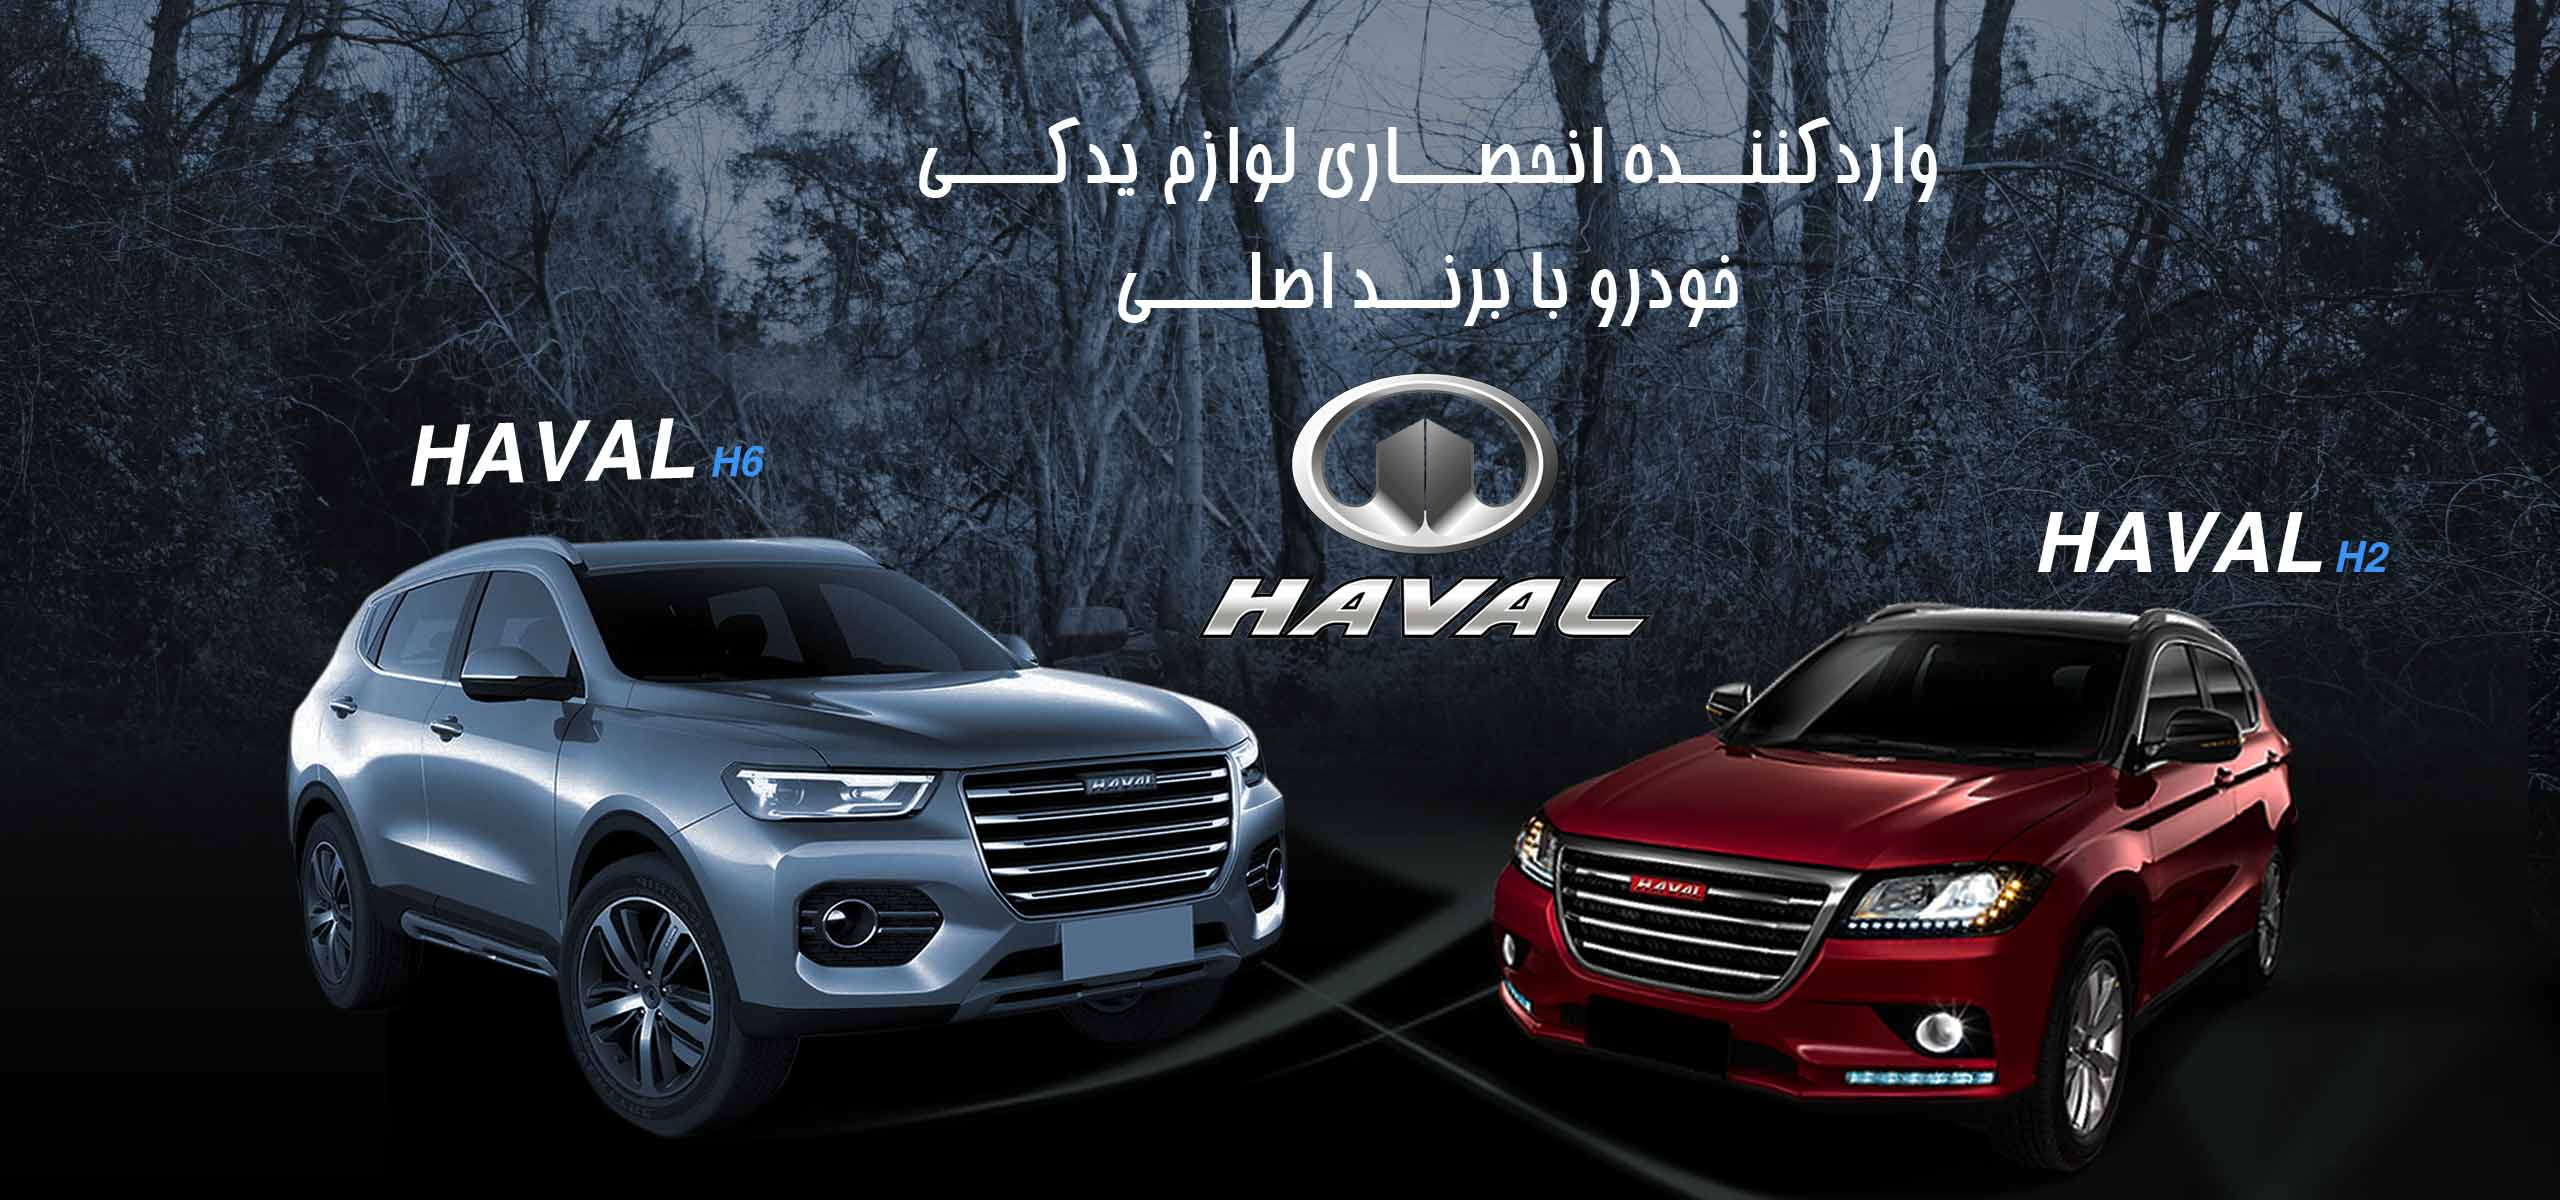 haval2